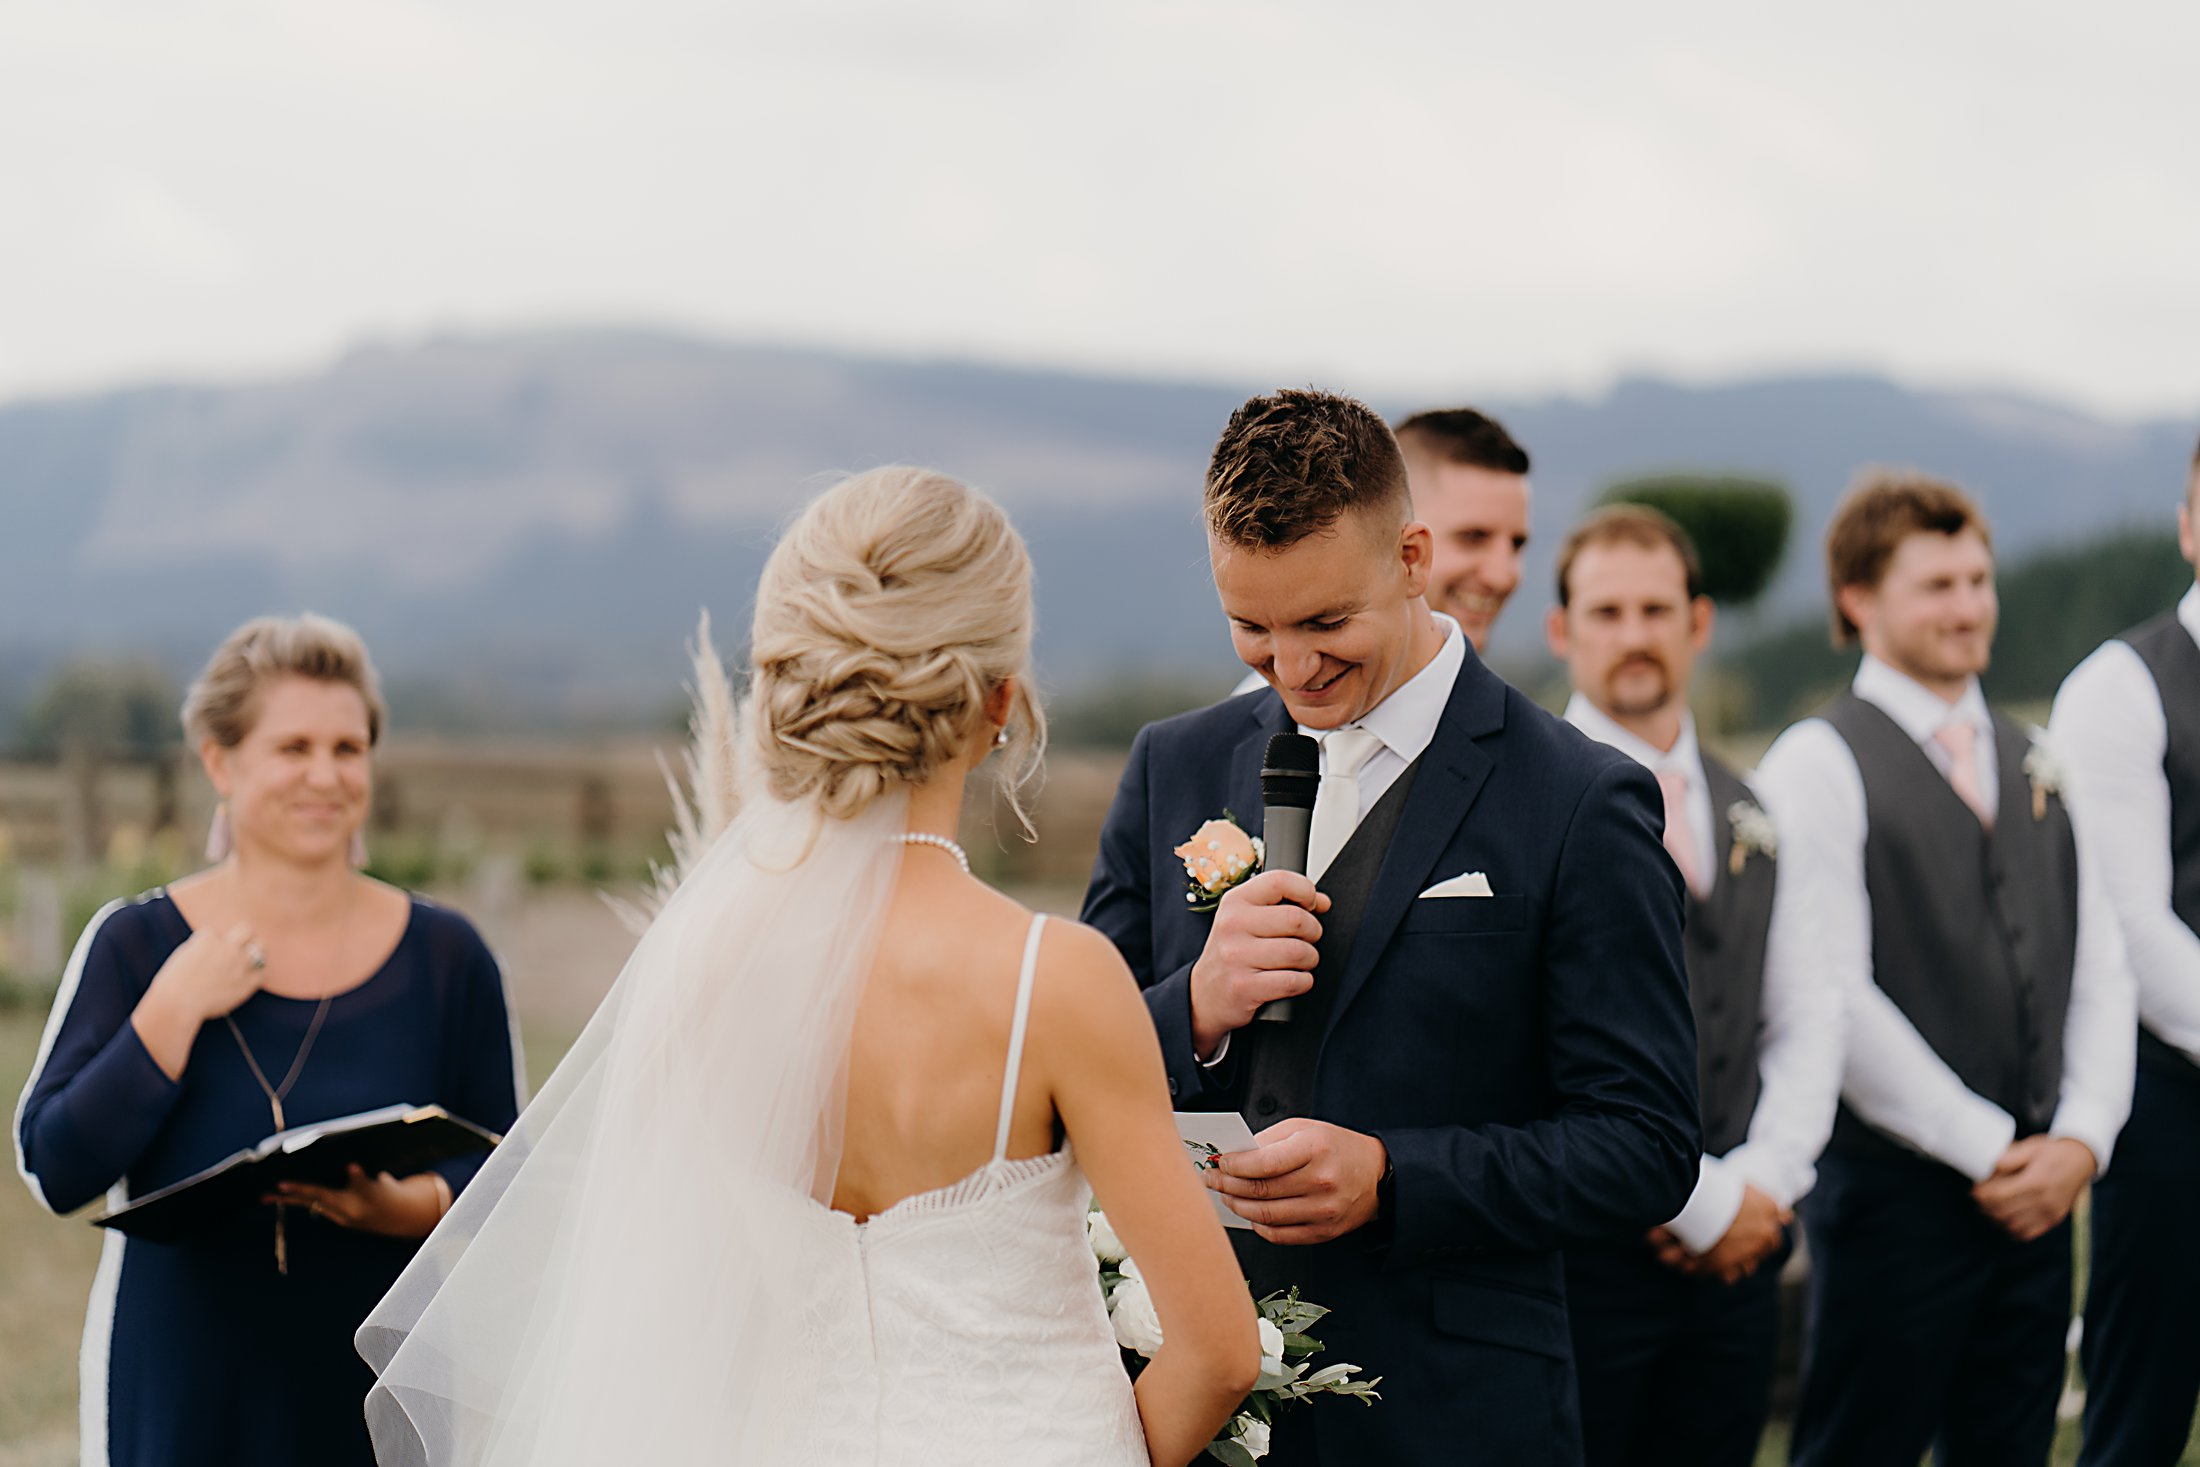 Tironui Wedding Venue